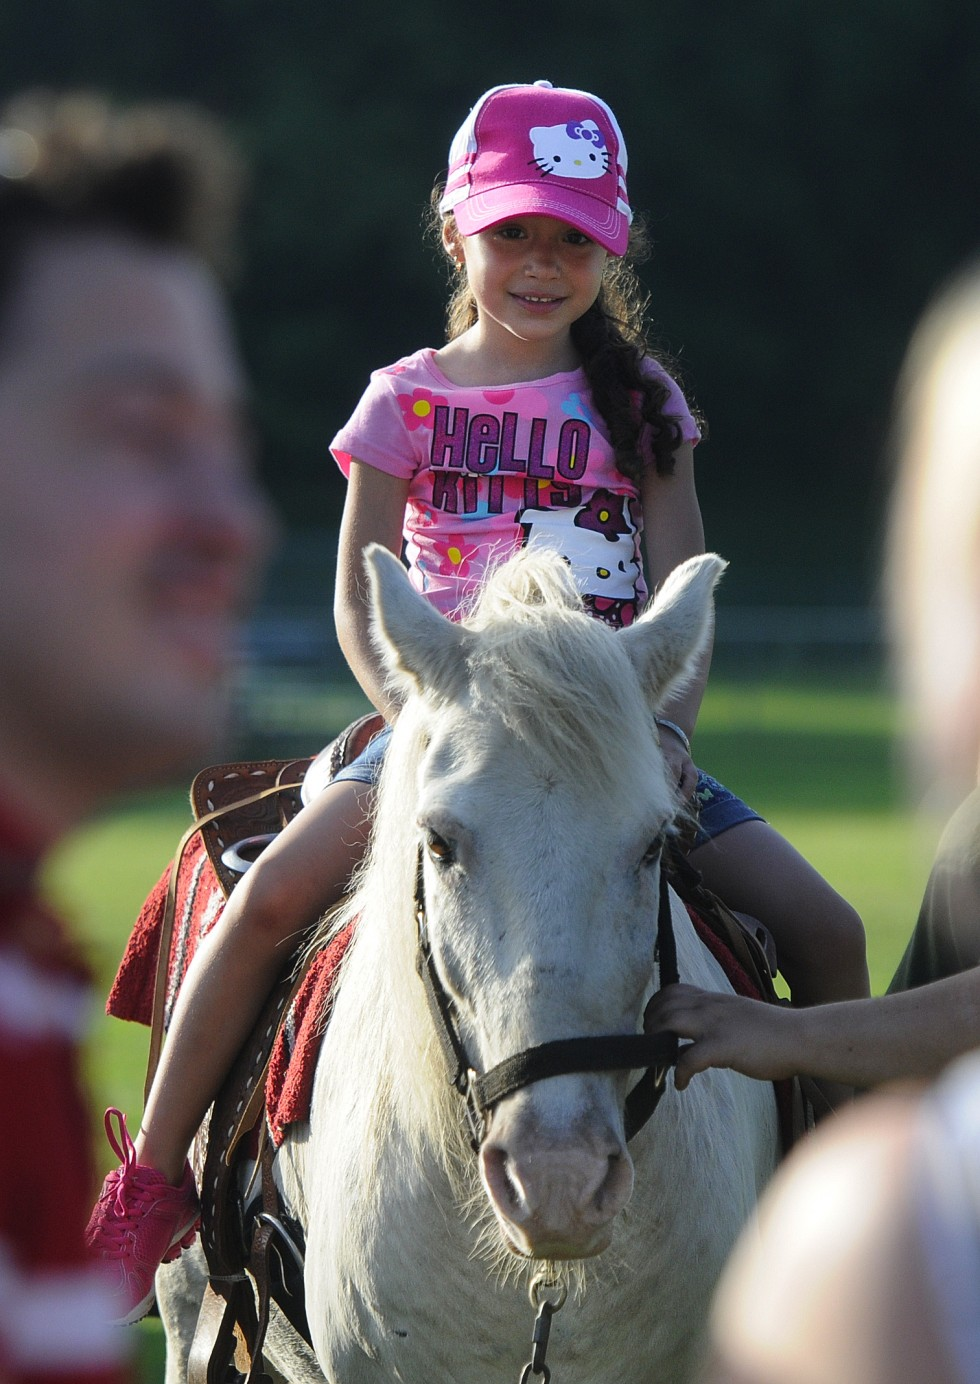 Haylee J. Rivera, 4, of New Britain, enjoys a pony ride available at the event. Rivera was at the park with her father and siblings.